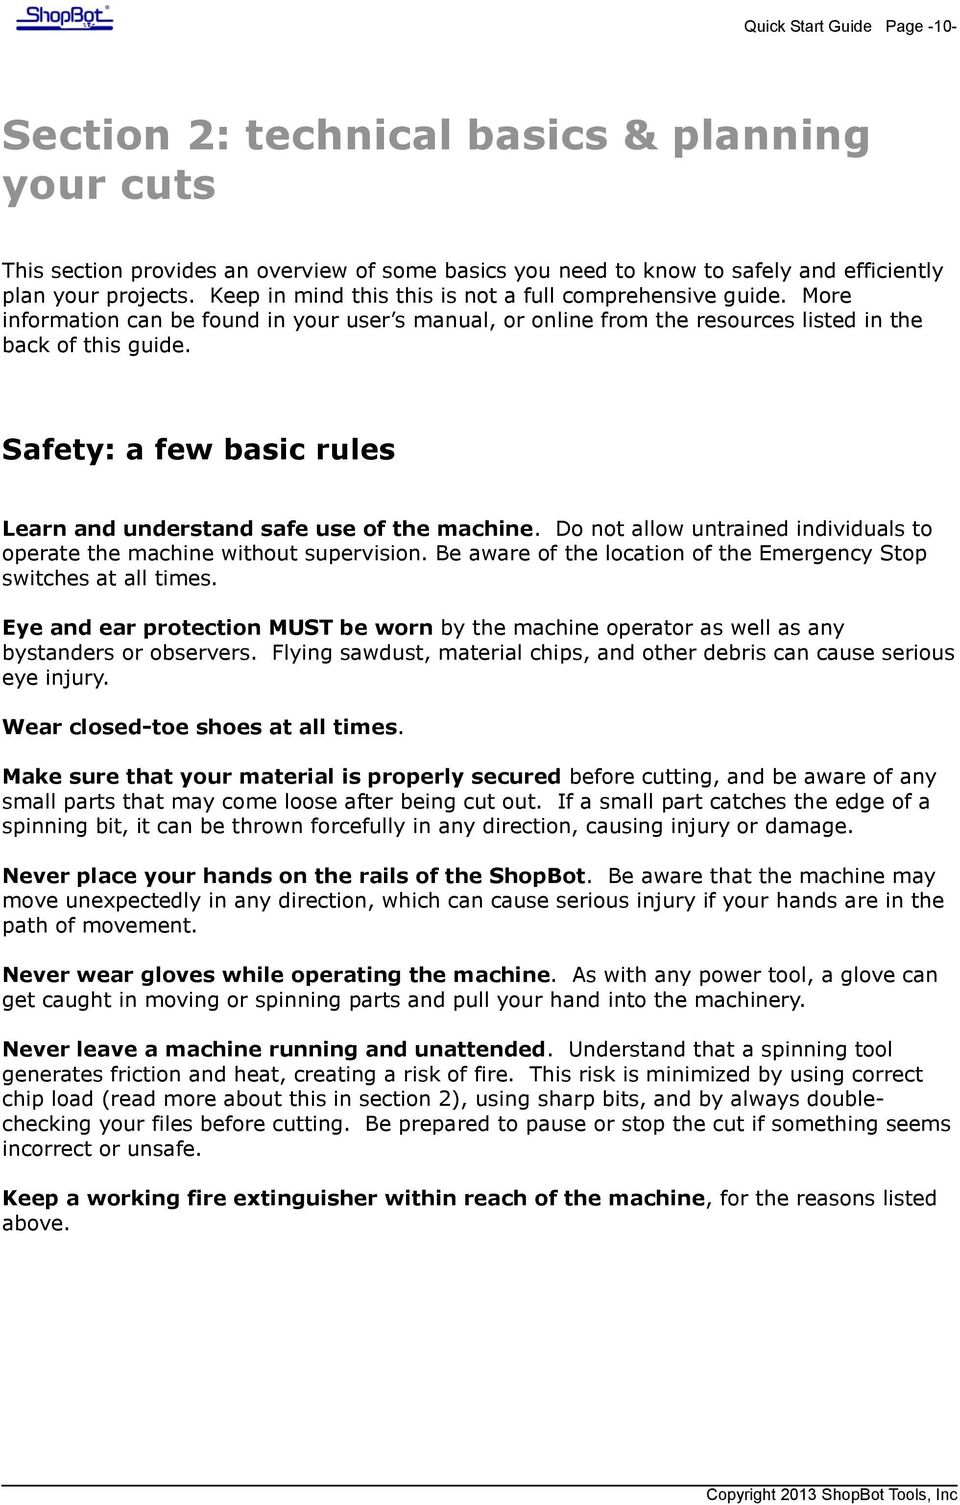 shopbot quick start guide for prs alpha and standard tools pdf safety a few basic rules learn and understand safe use of the machine do